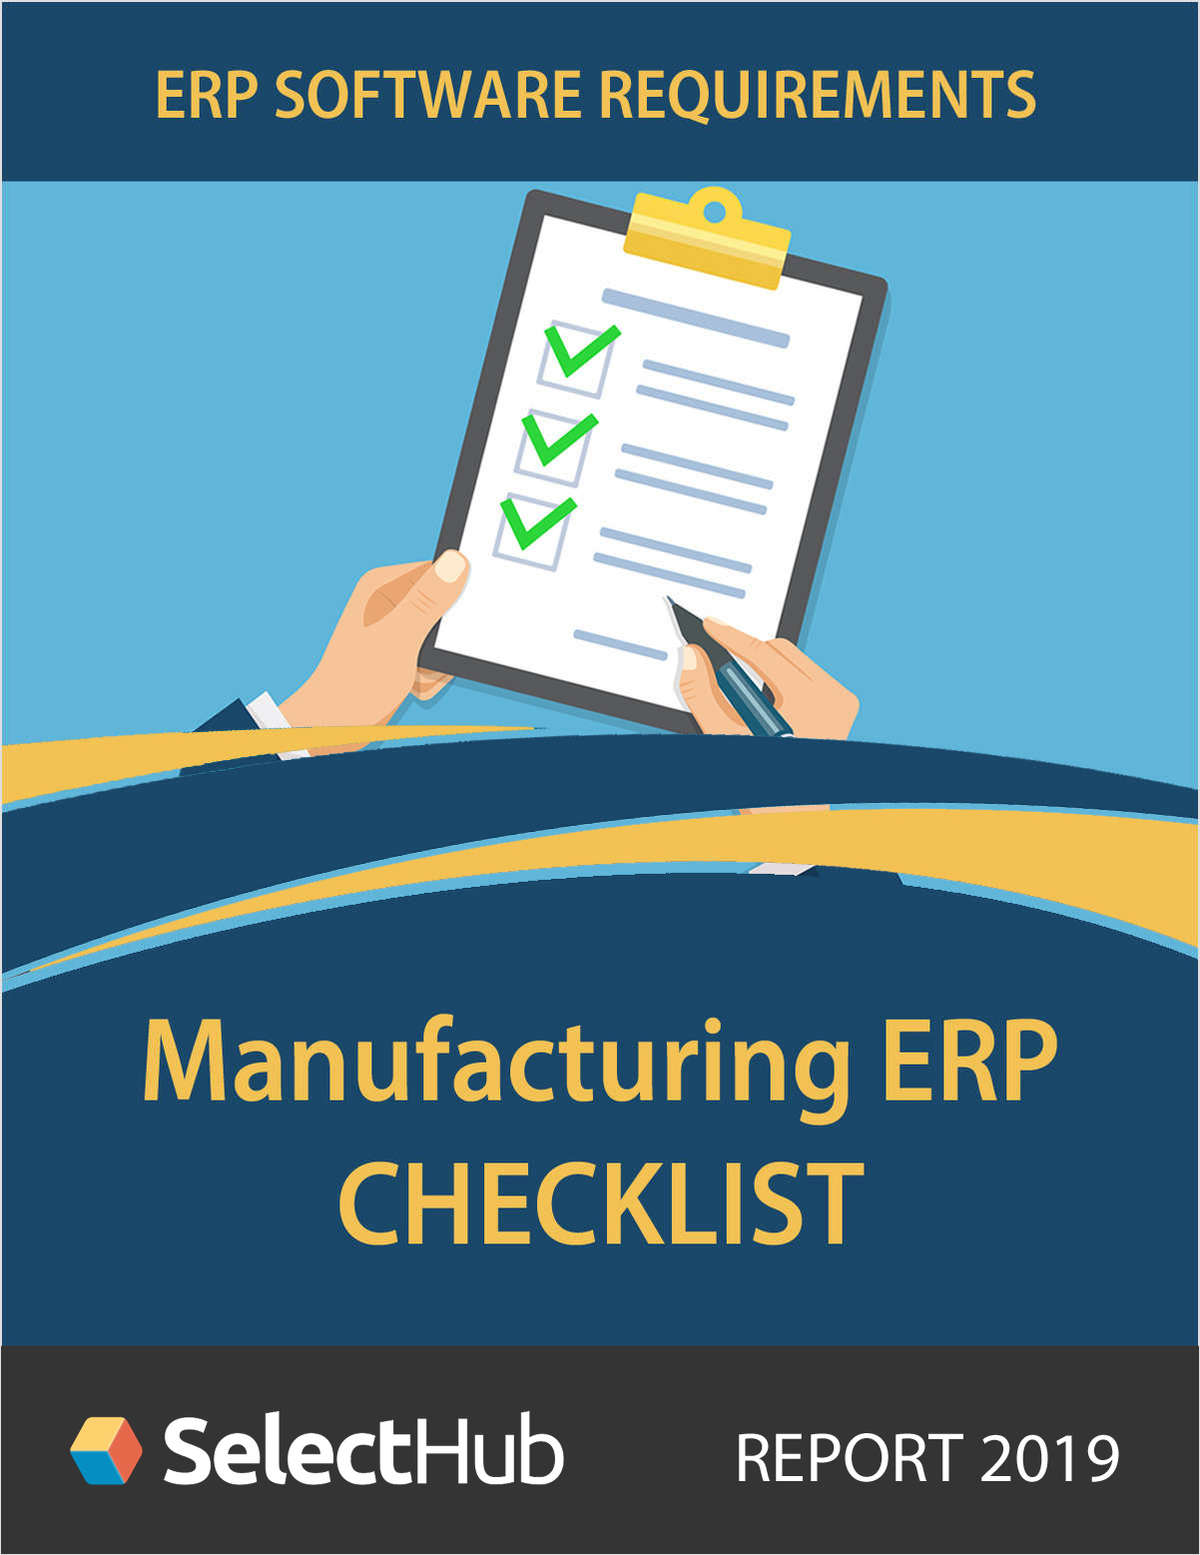 Manufacturing ERP Requirements Checklist & Template